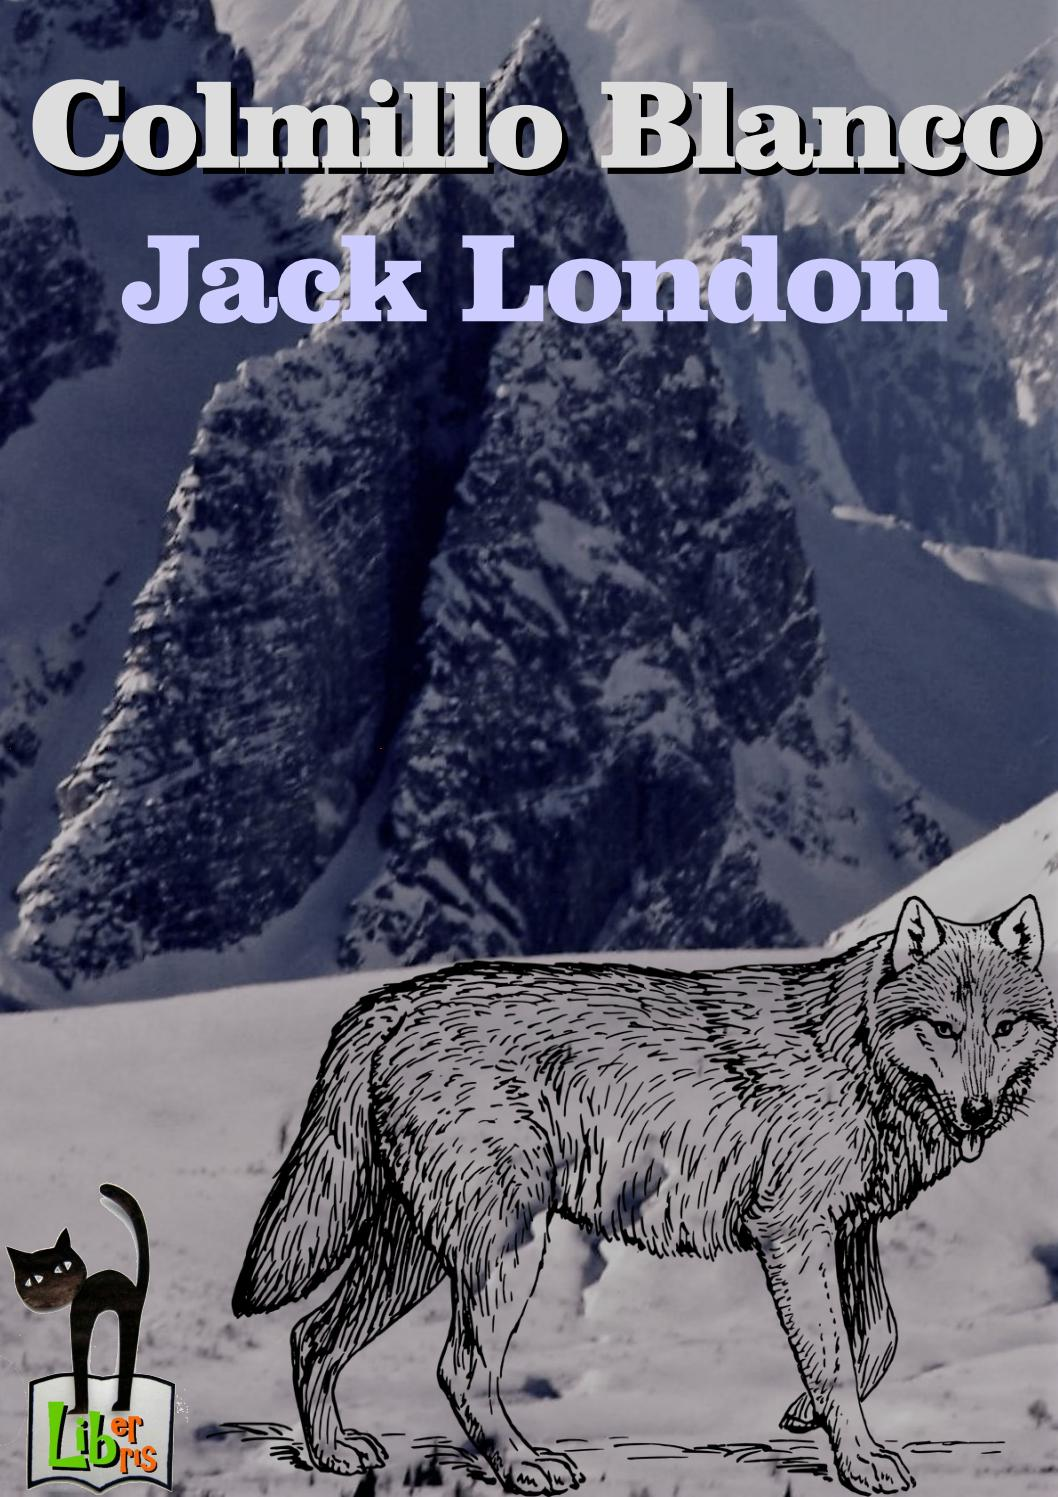 Colmillo Blanco Libro Colmillo Blanco De Jack London By Liber Libris Issuu